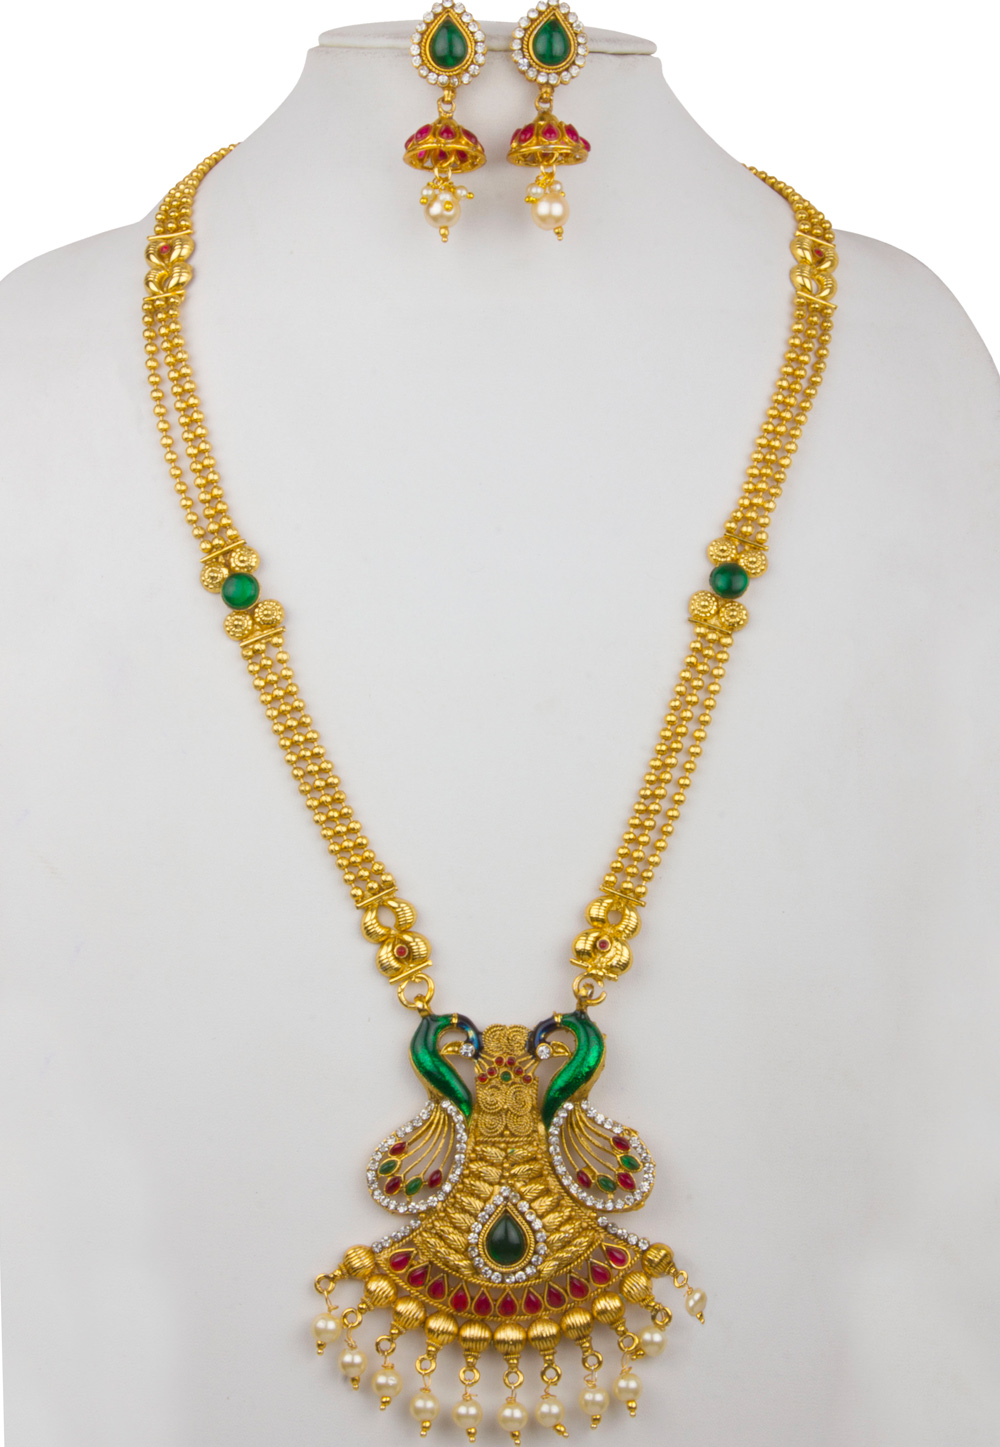 Green Alloy Necklace With Earrings 157145